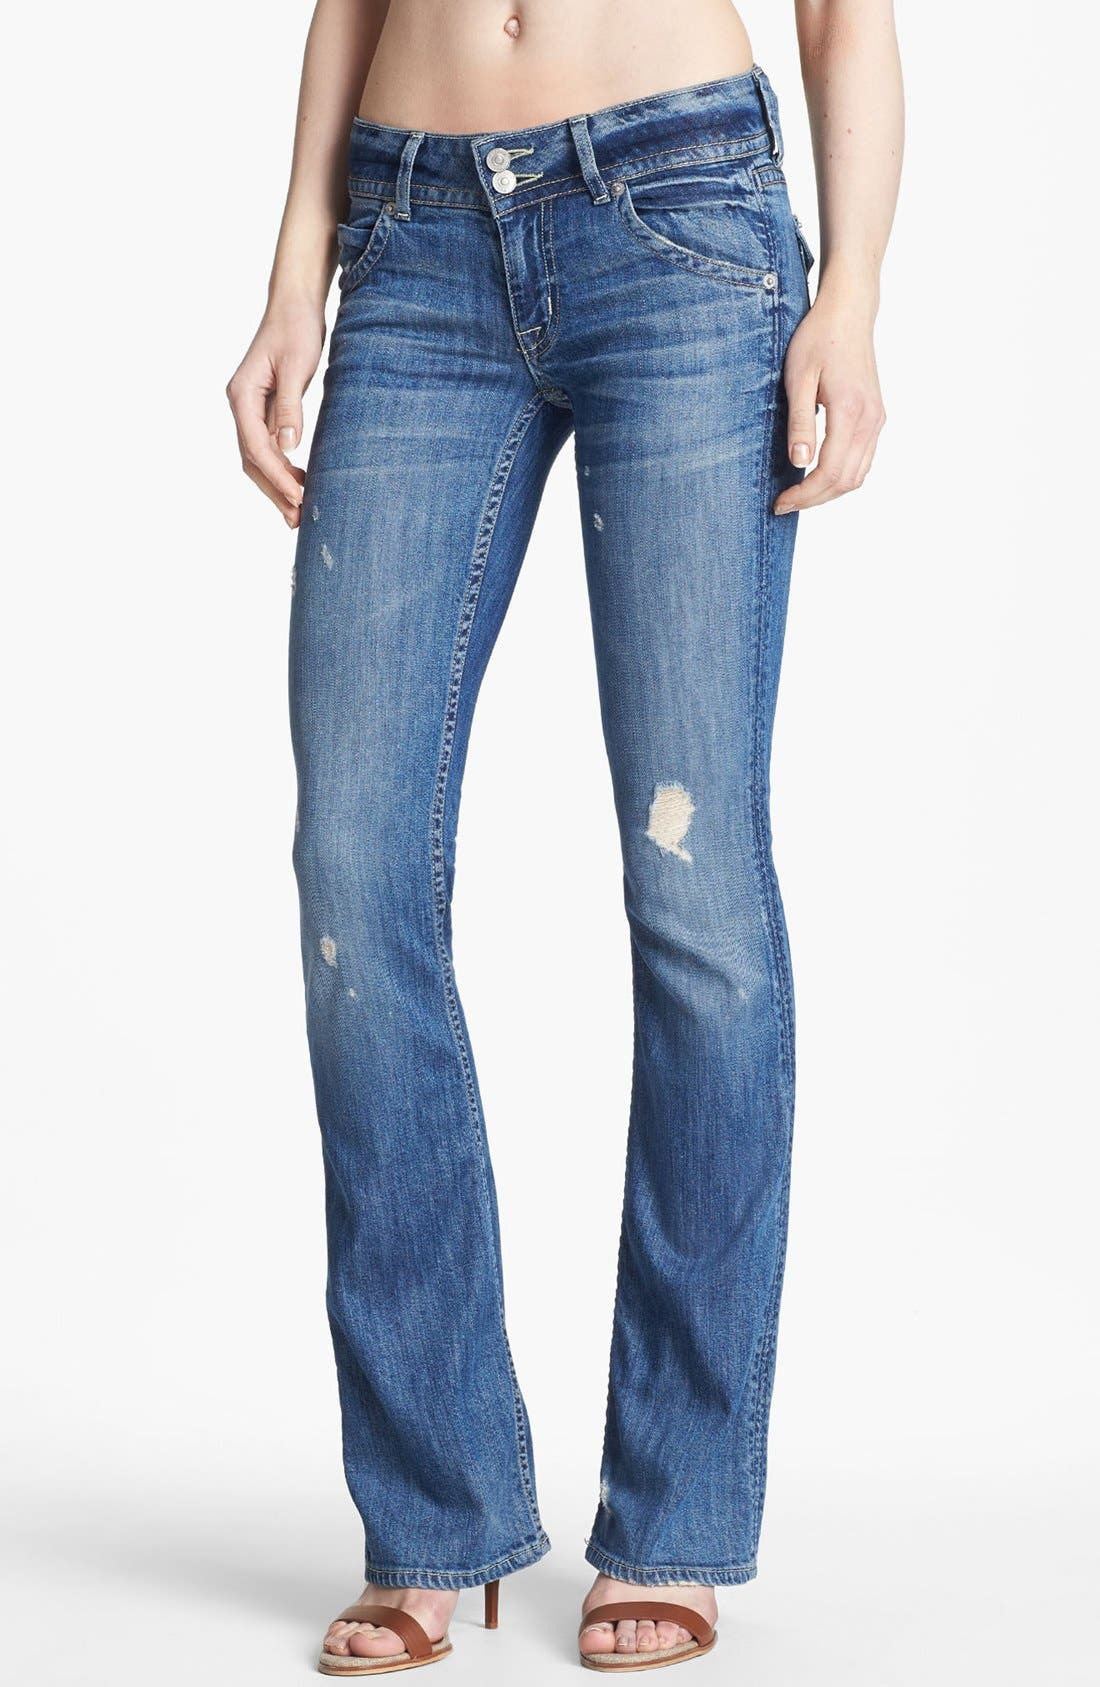 Alternate Image 1 Selected - Hudson Jeans Signature Bootcut Jeans (Indie)